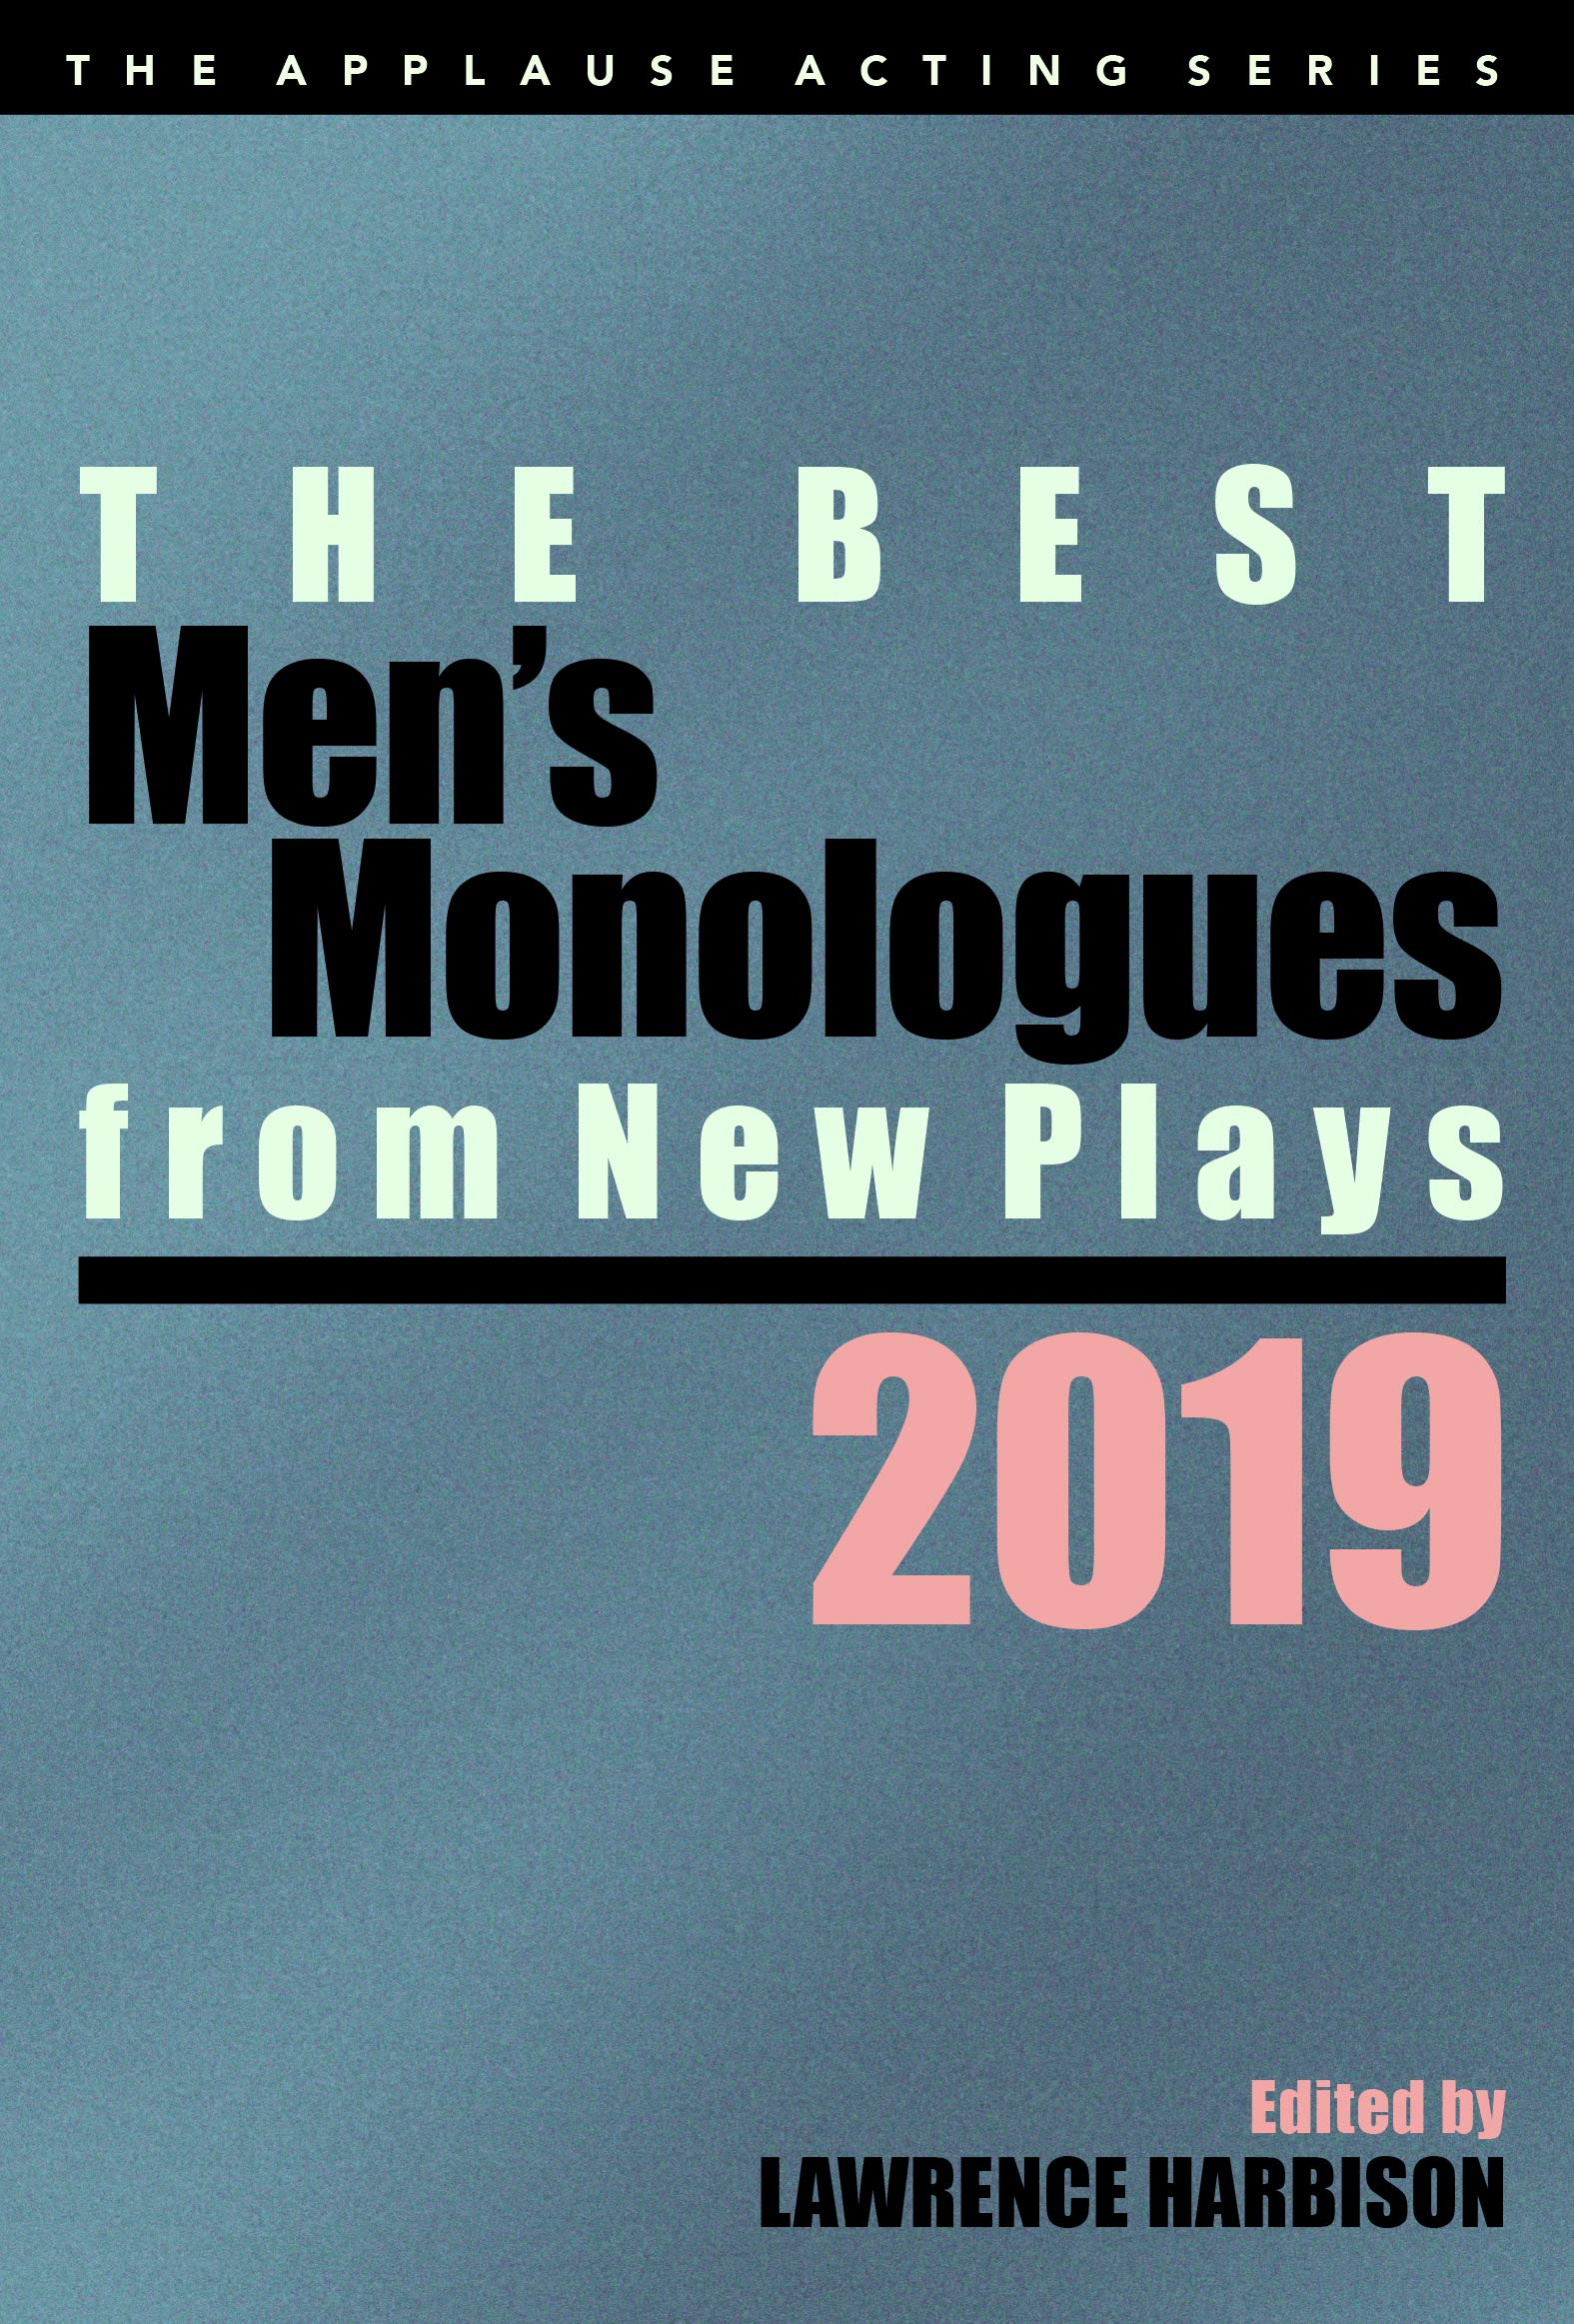 The Best Men's Monologues from New Plays, 2019 (Applause